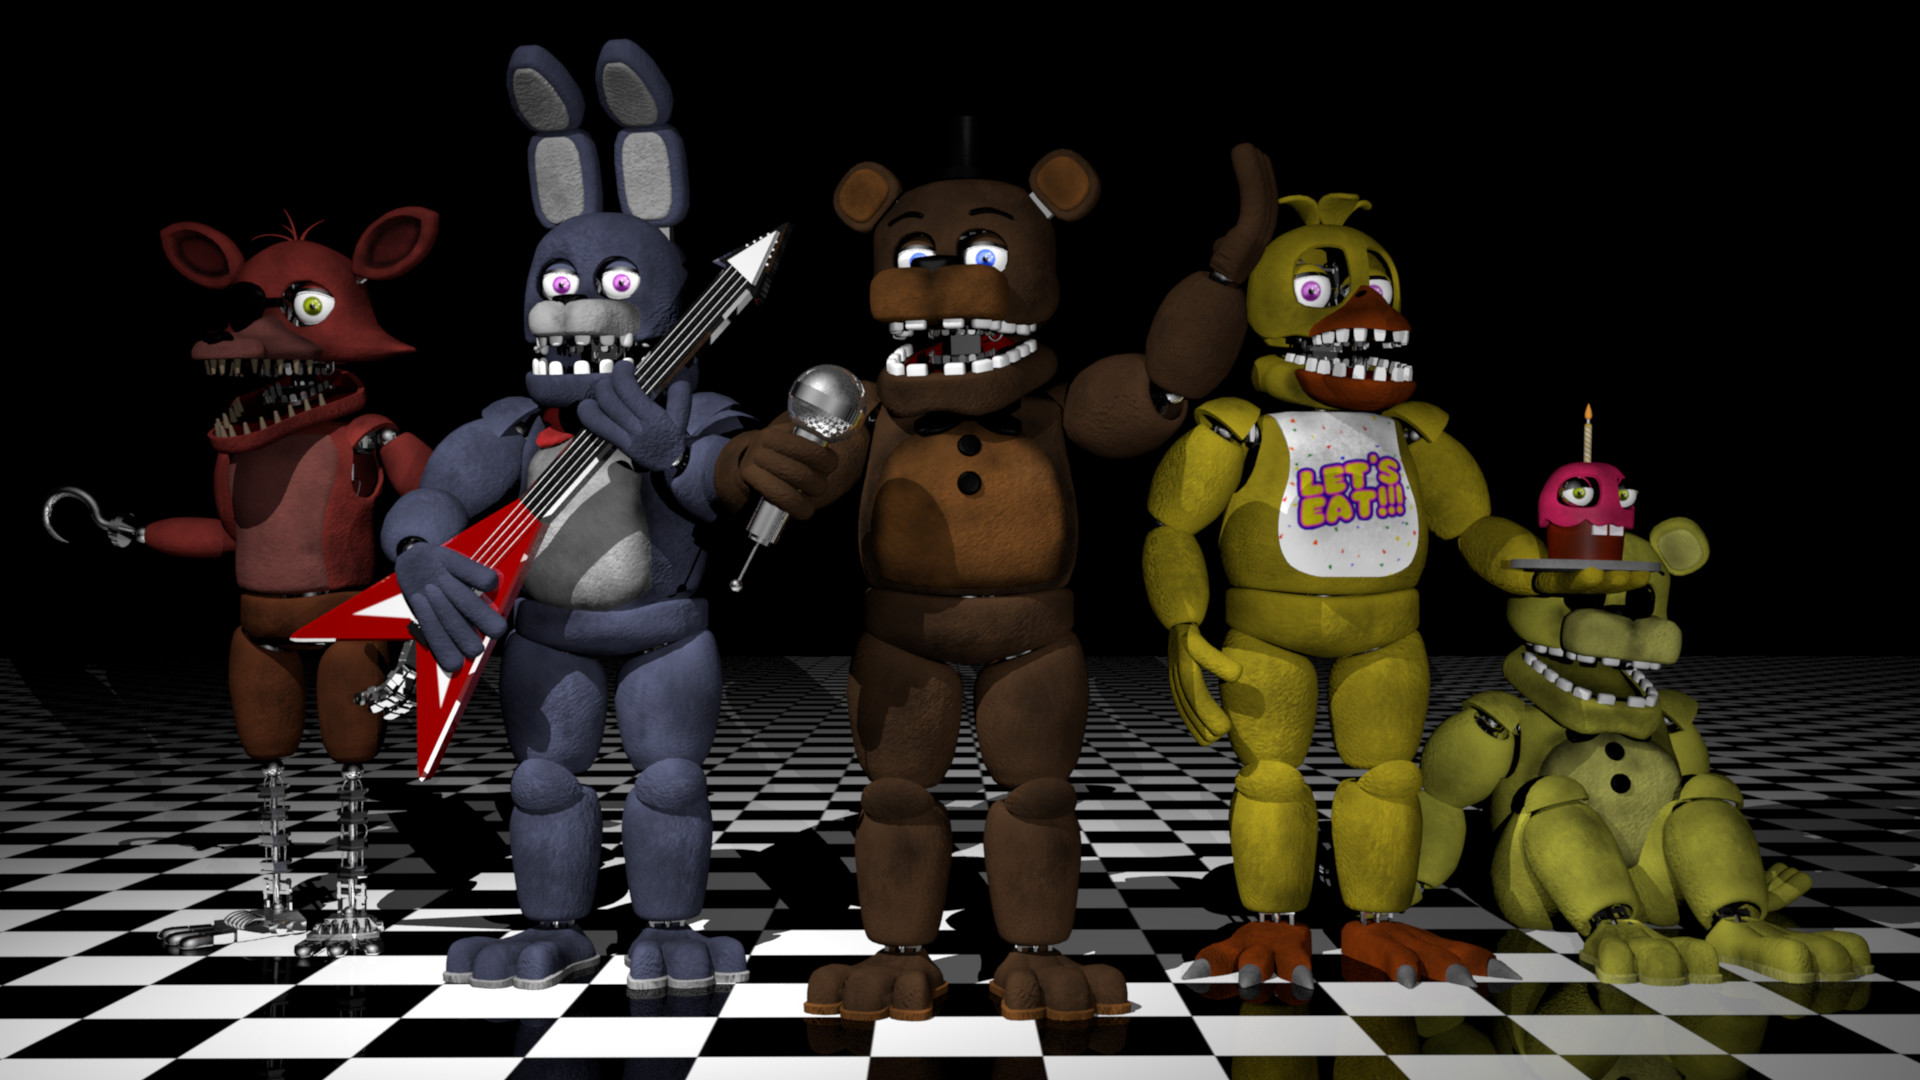 ArtStation - Five Nights at Freddy's 2 Fan-made Withered 3D